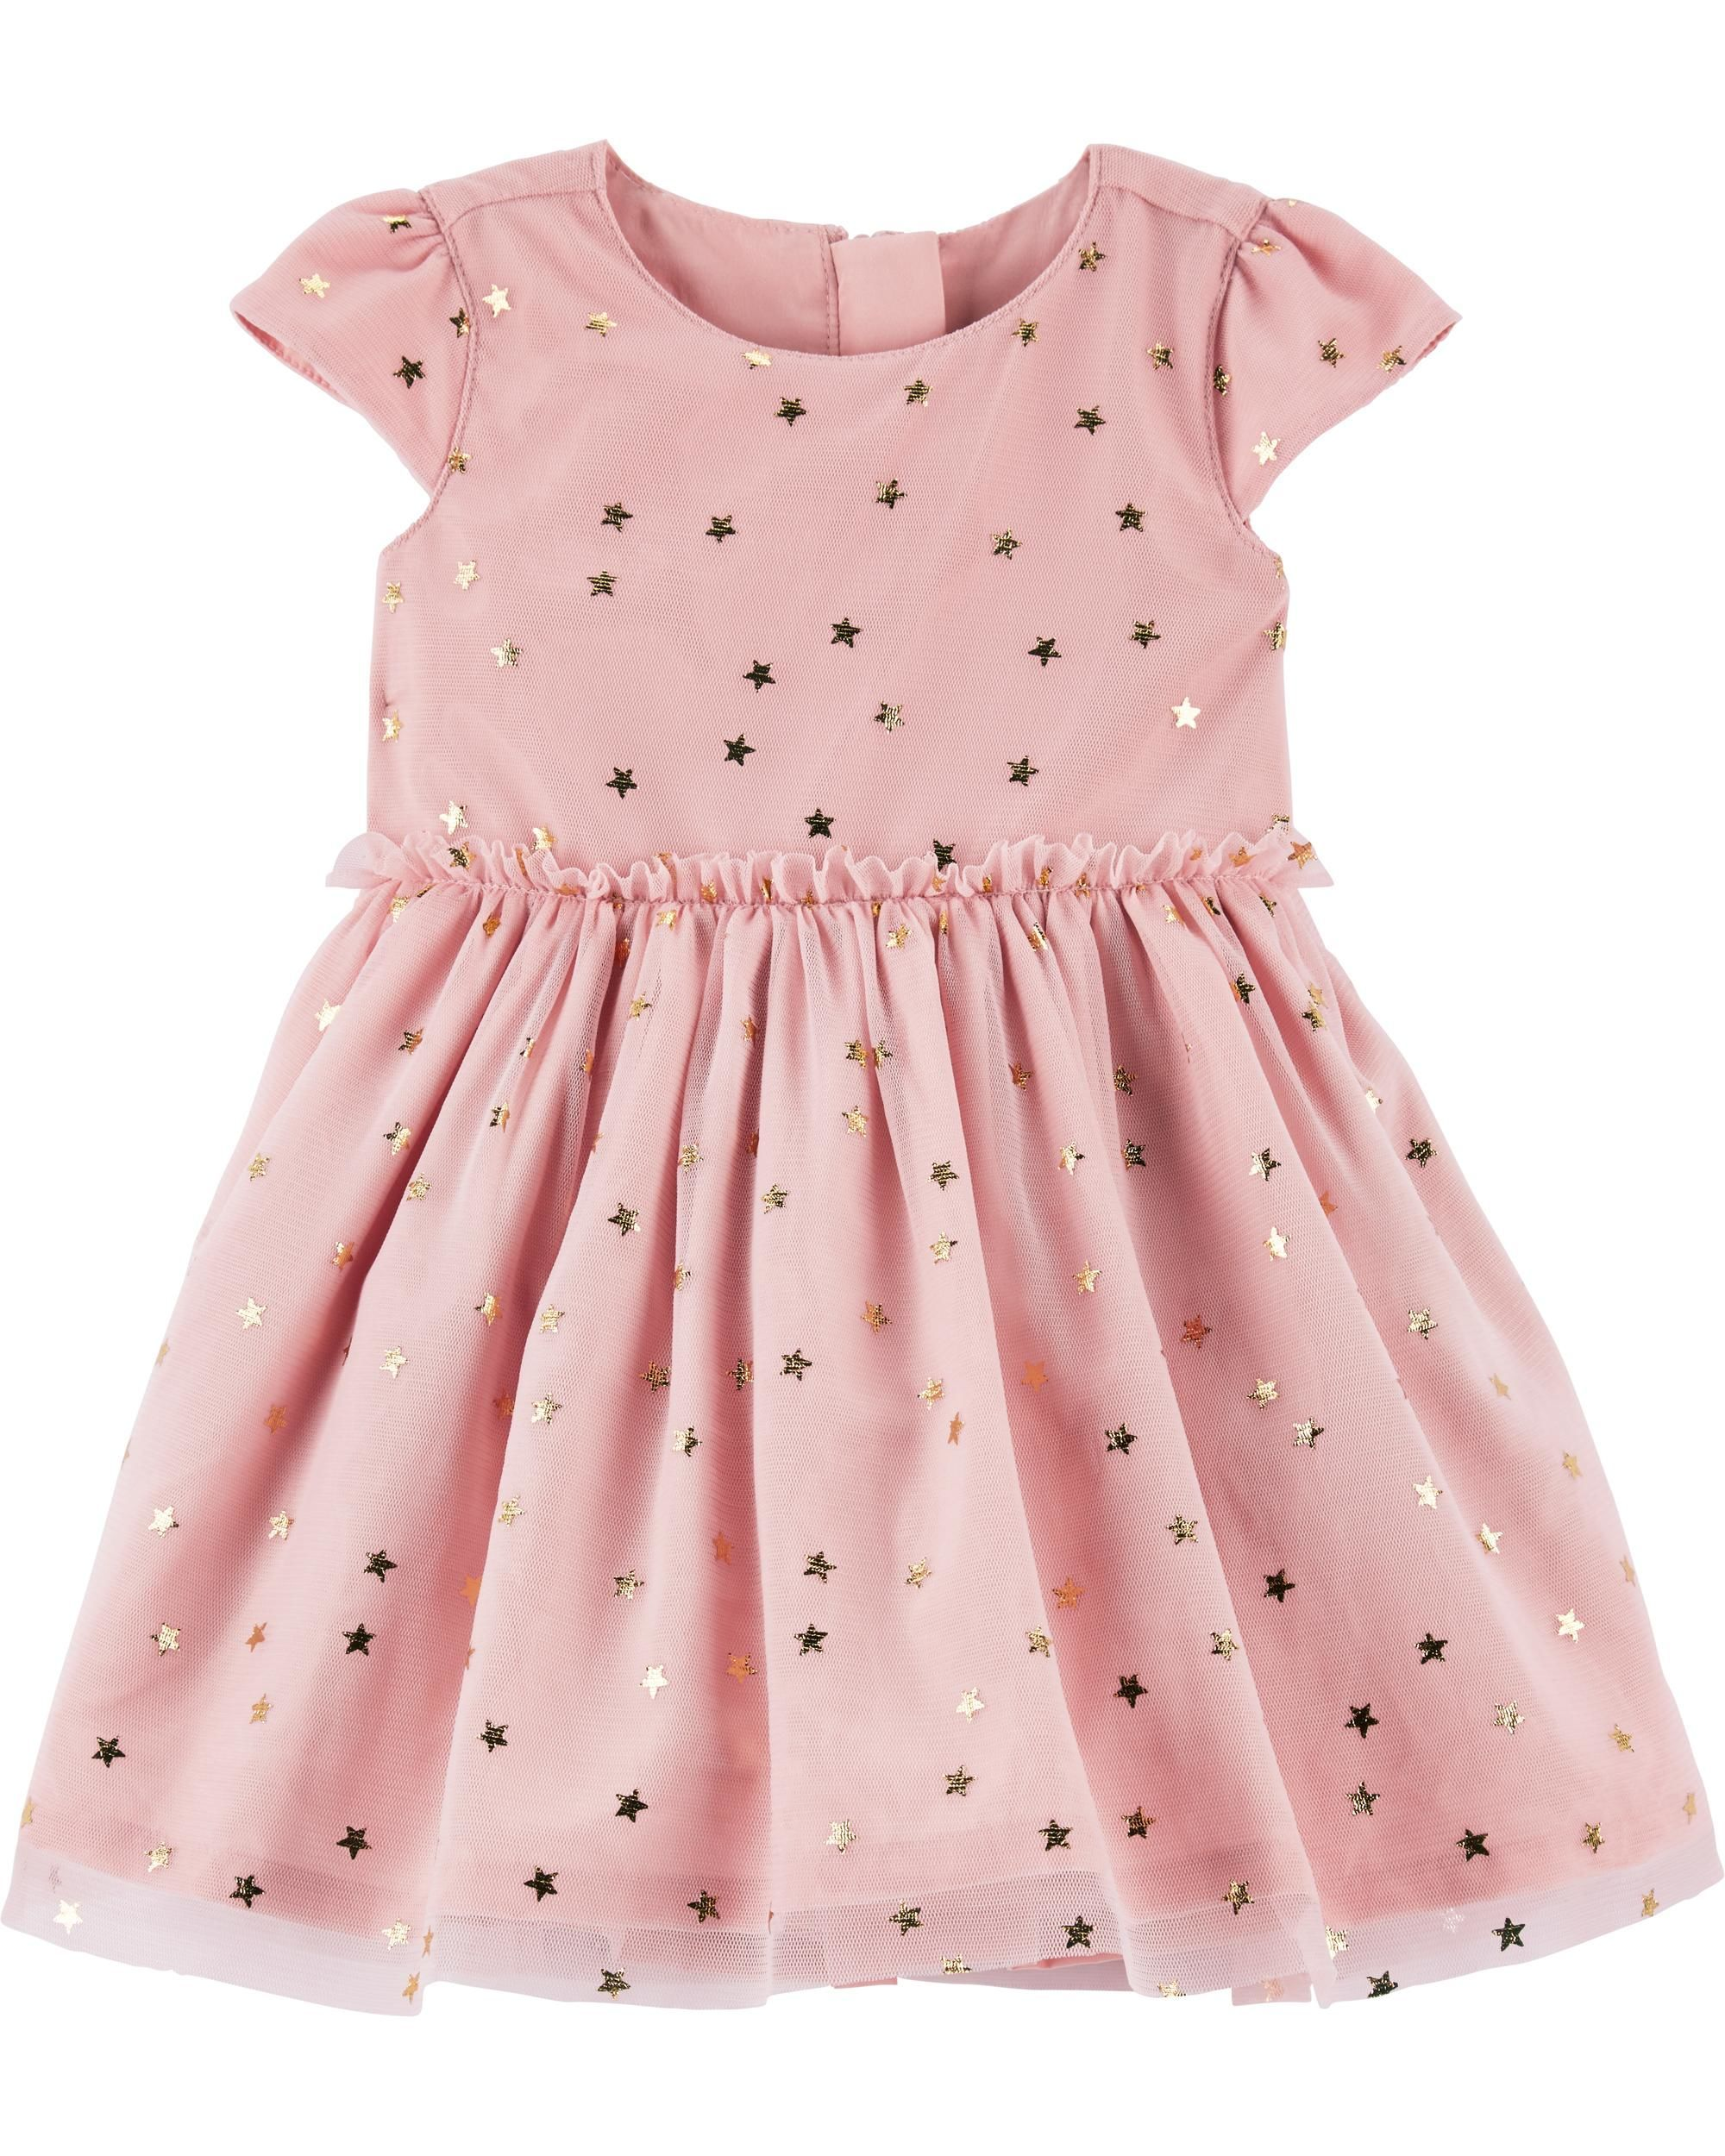 d6ff235f011c Star Tulle Holiday Dress | Carters.com. Baby Girl Star Tulle vestido ...